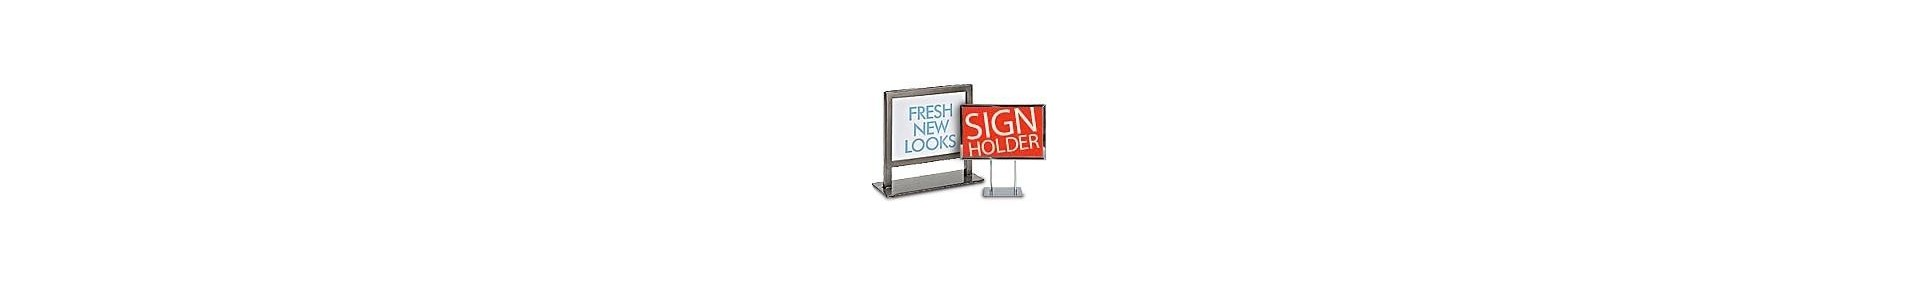 Metal Sign Holder | Metal Sign | Sign Holders